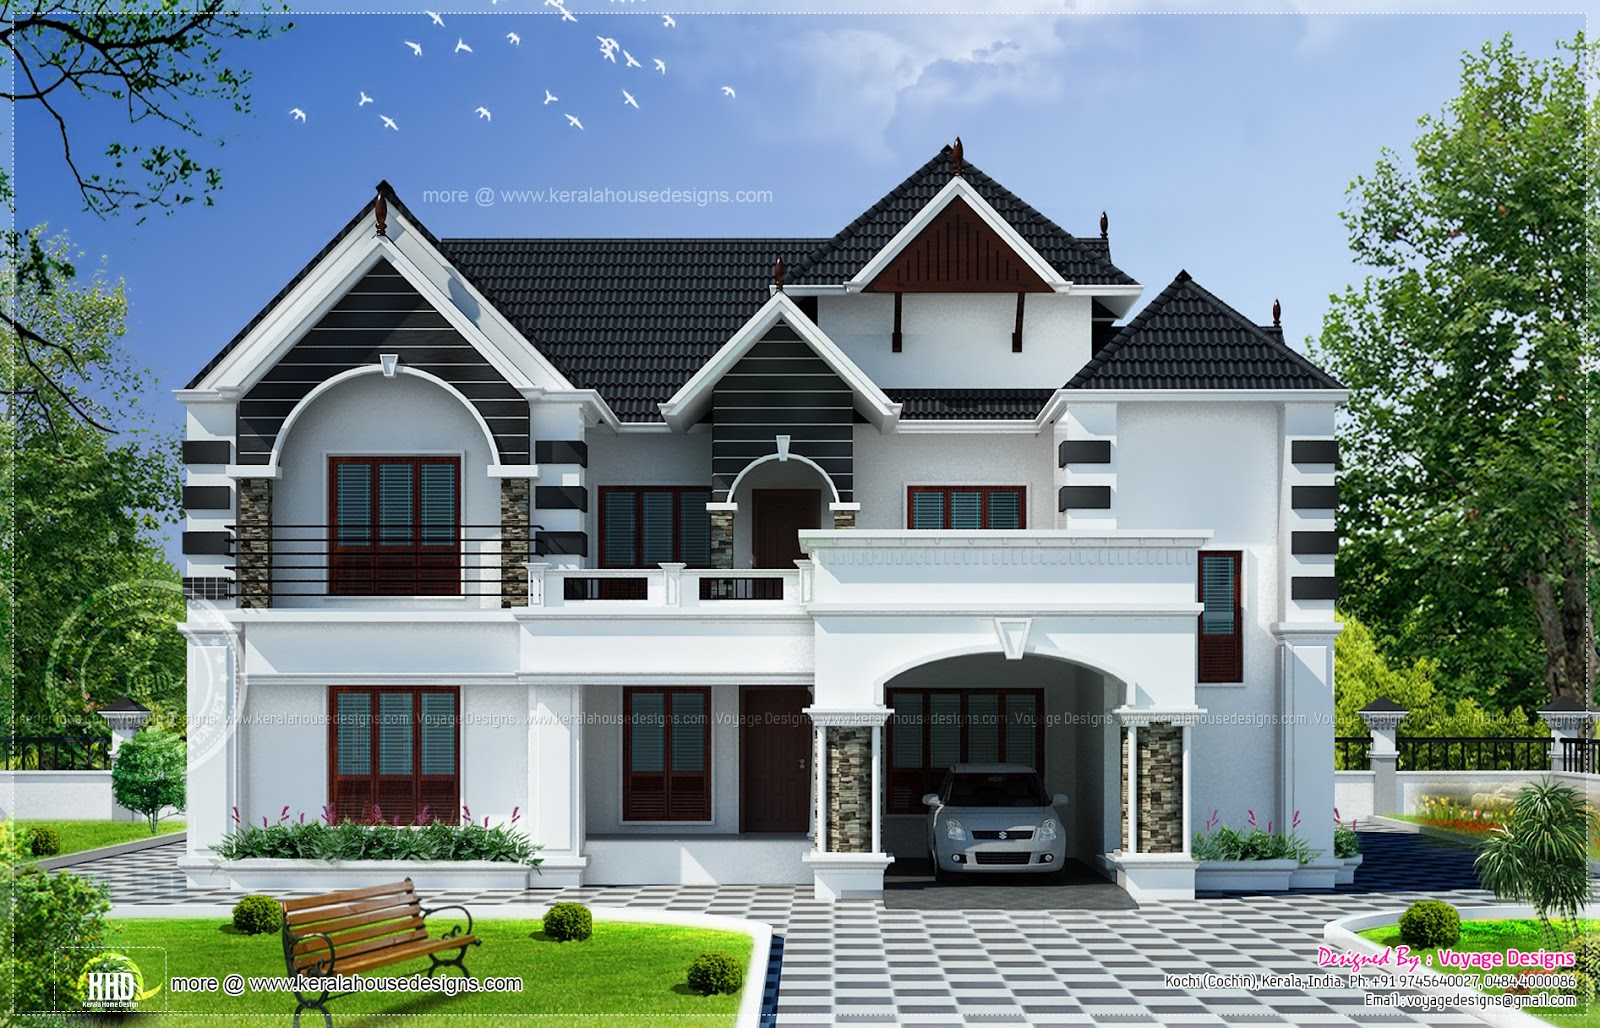 4 bedroom colonial style house kerala home design and for Kerala style 2 bedroom house plans